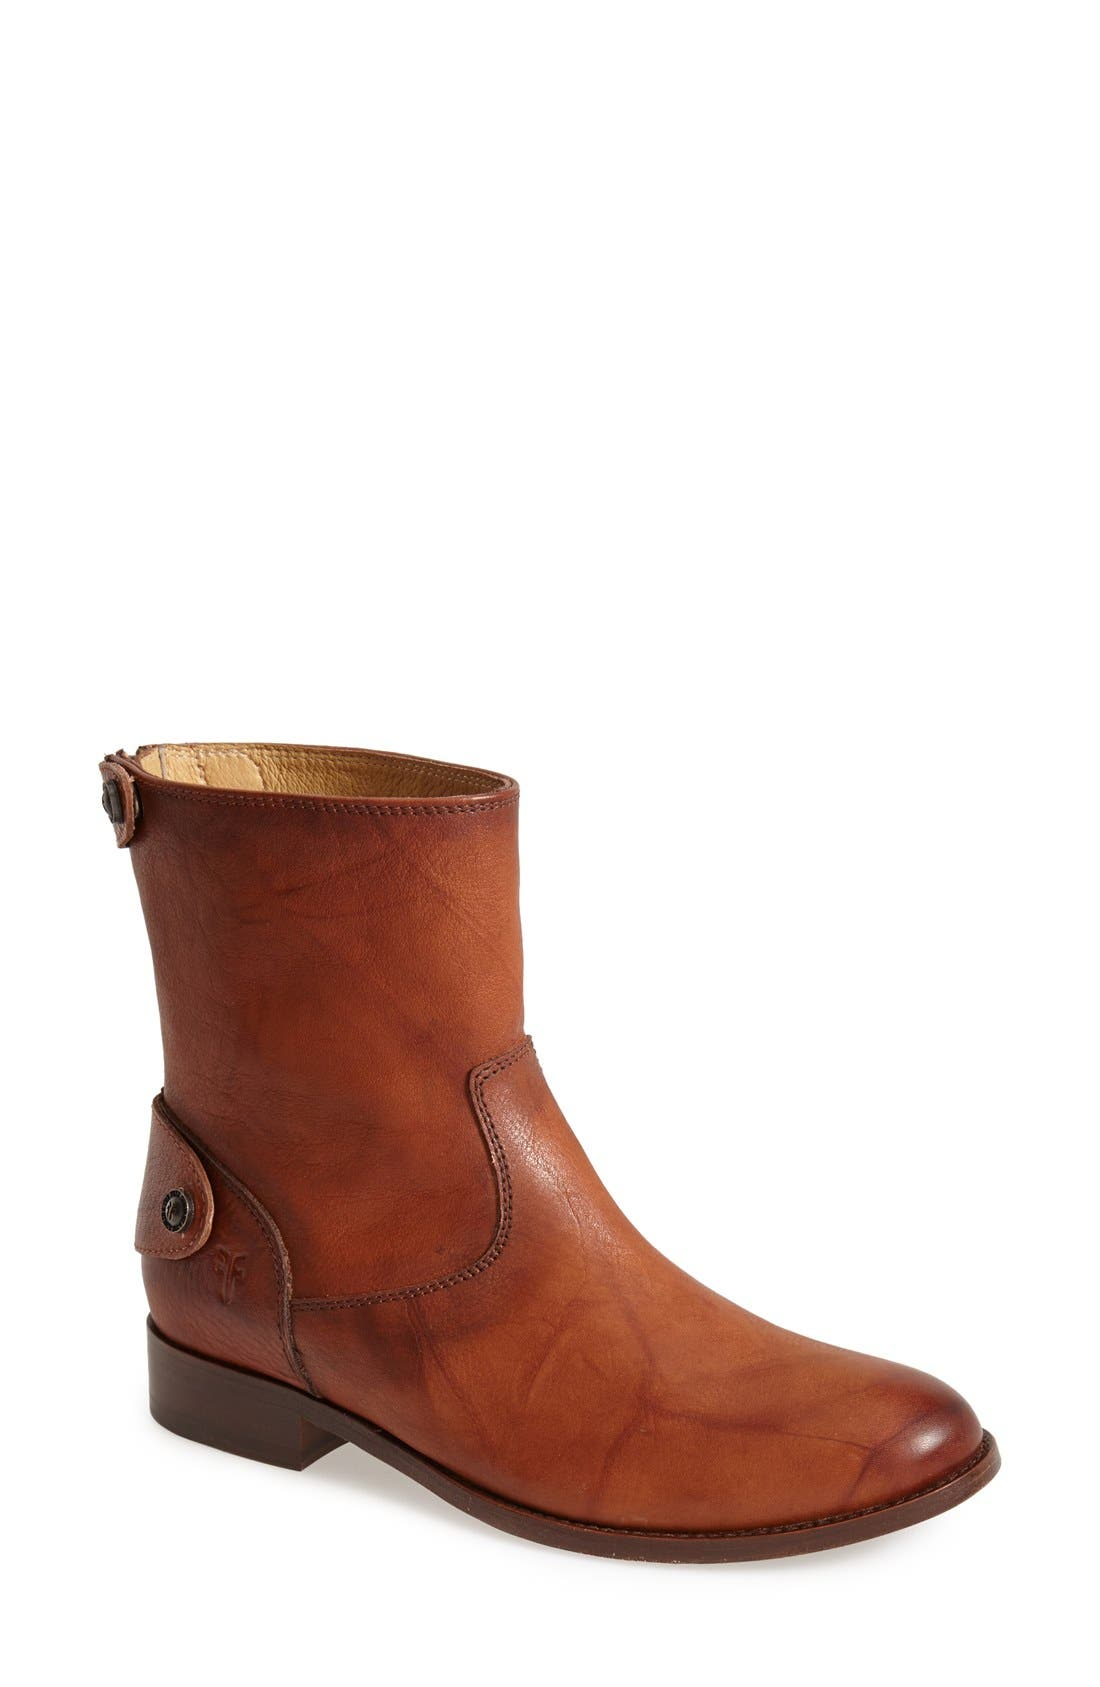 Main Image - Frye 'Melissa Button' Zip Short Boot (Women)